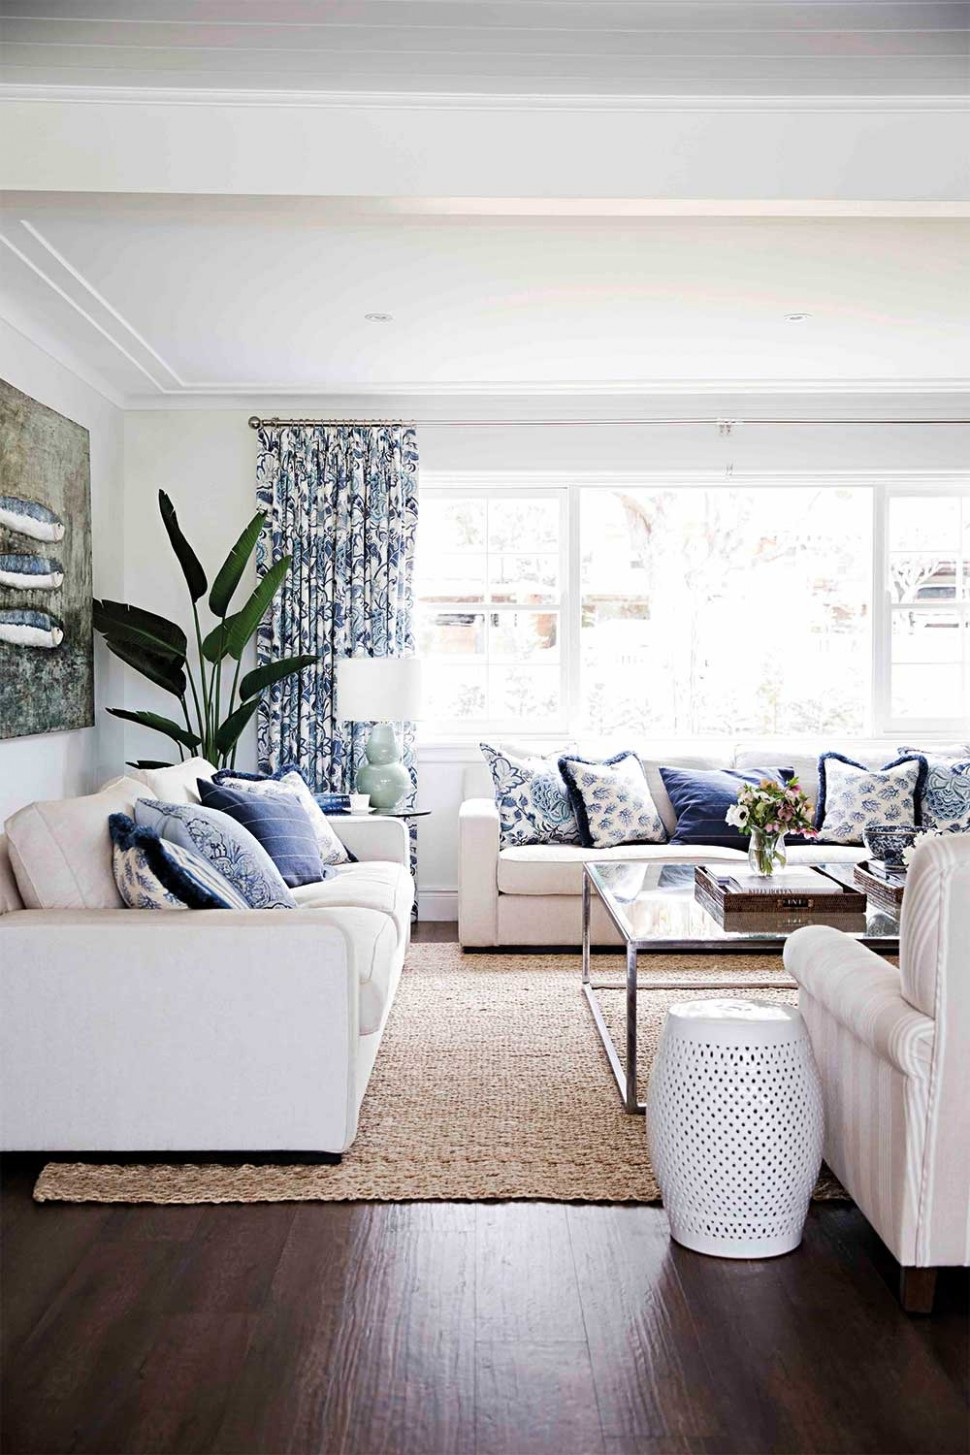 12 easy ways to decorate your home with Hamptons style decor  - Bedroom Ideas Hampton Style